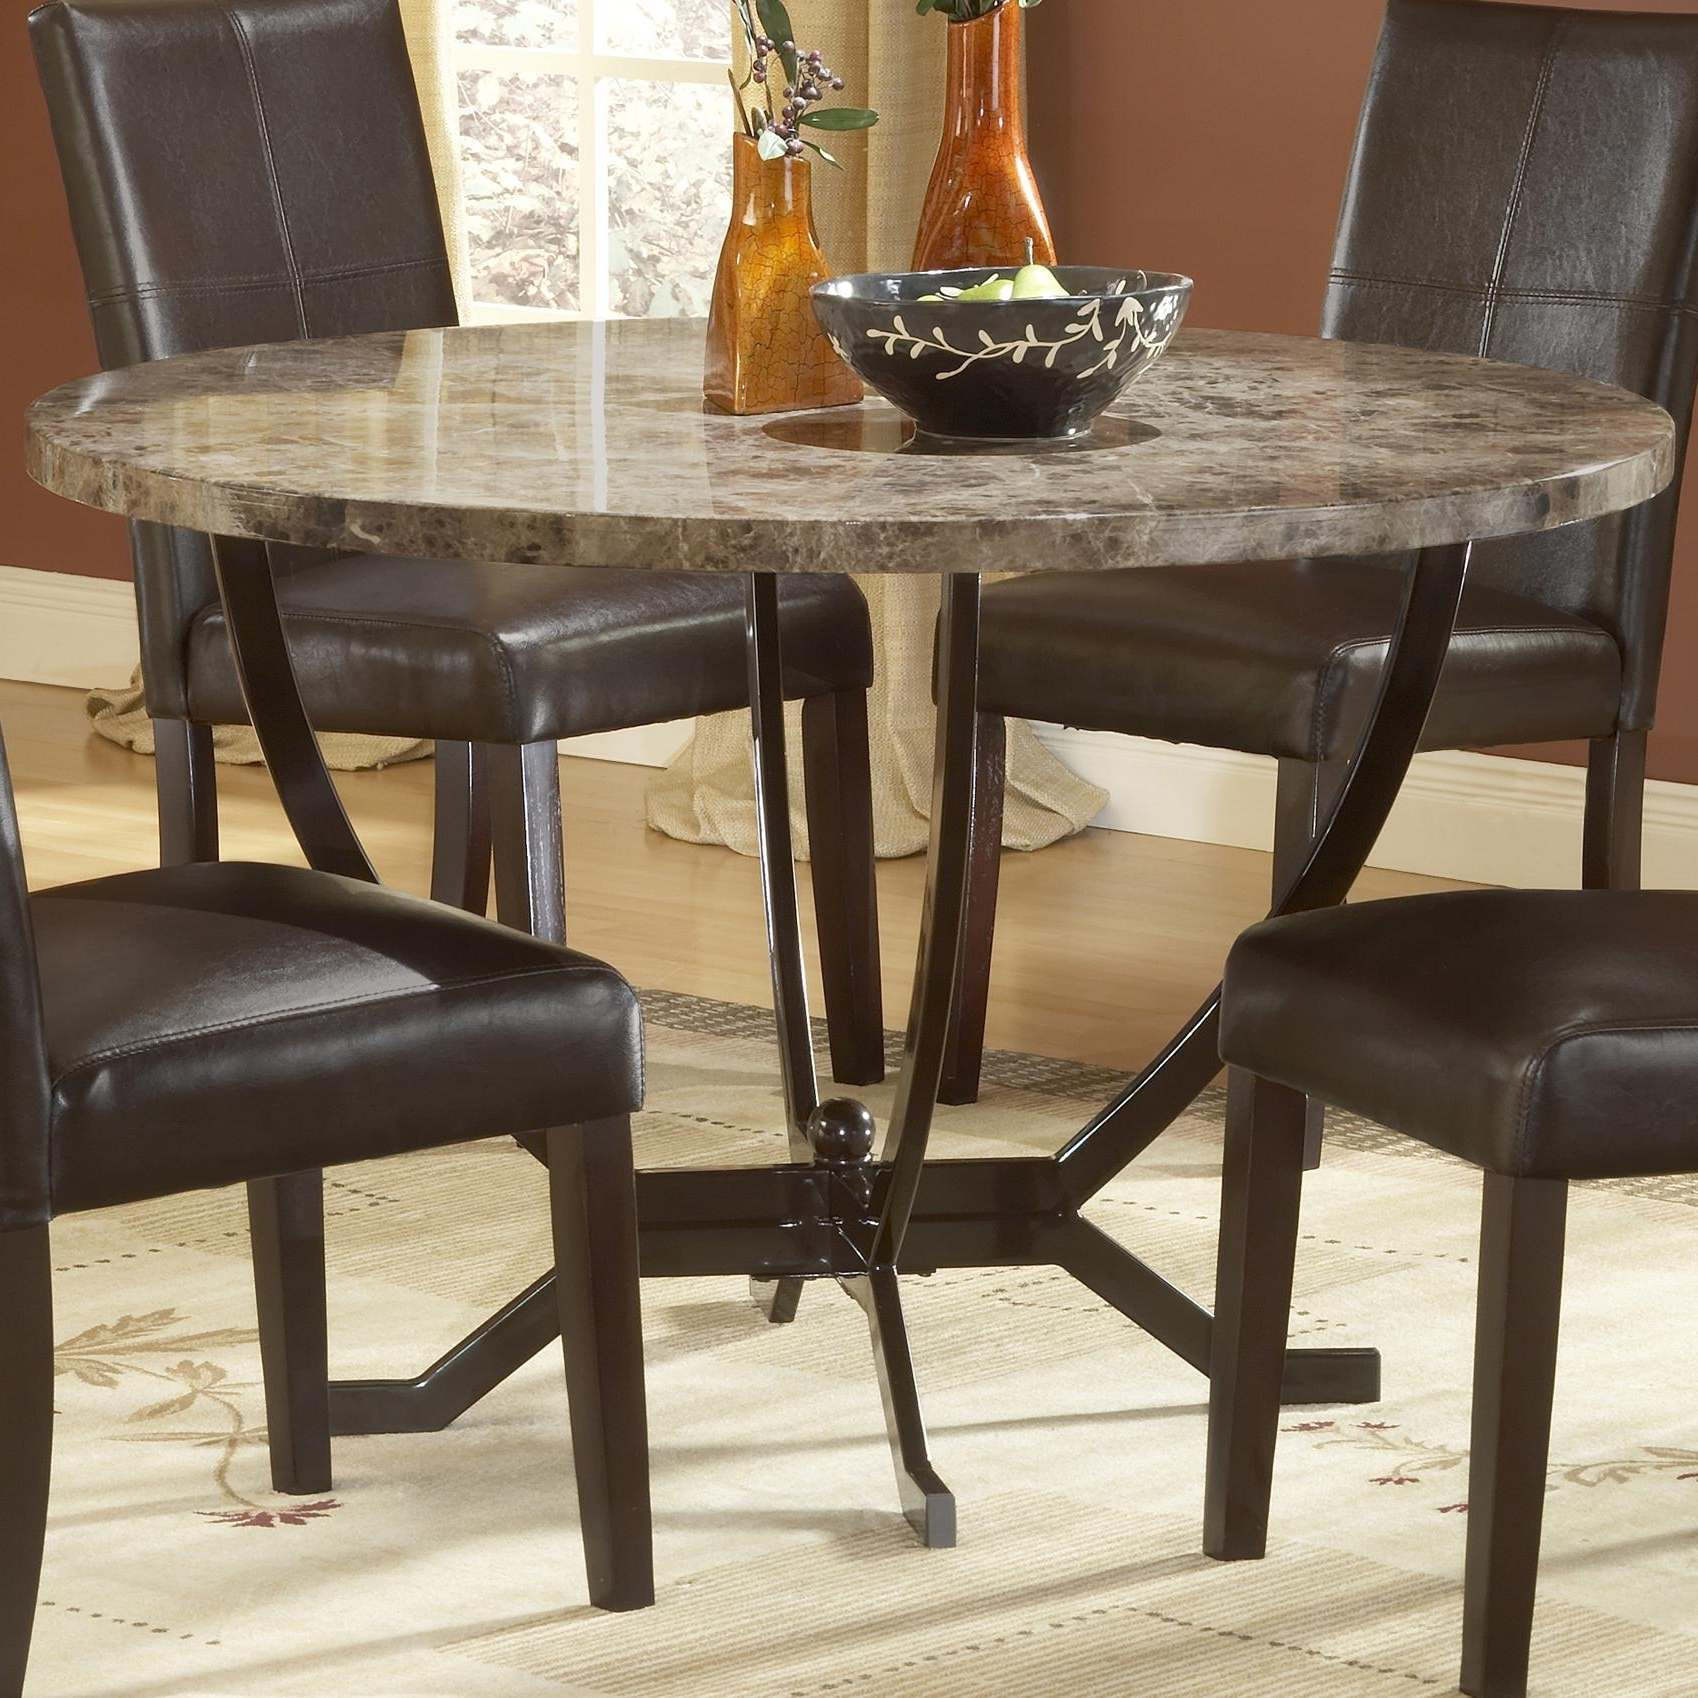 Lindy's Furniture Company With Regard To Well Known Lindy Espresso Rectangle Dining Tables (View 13 of 25)